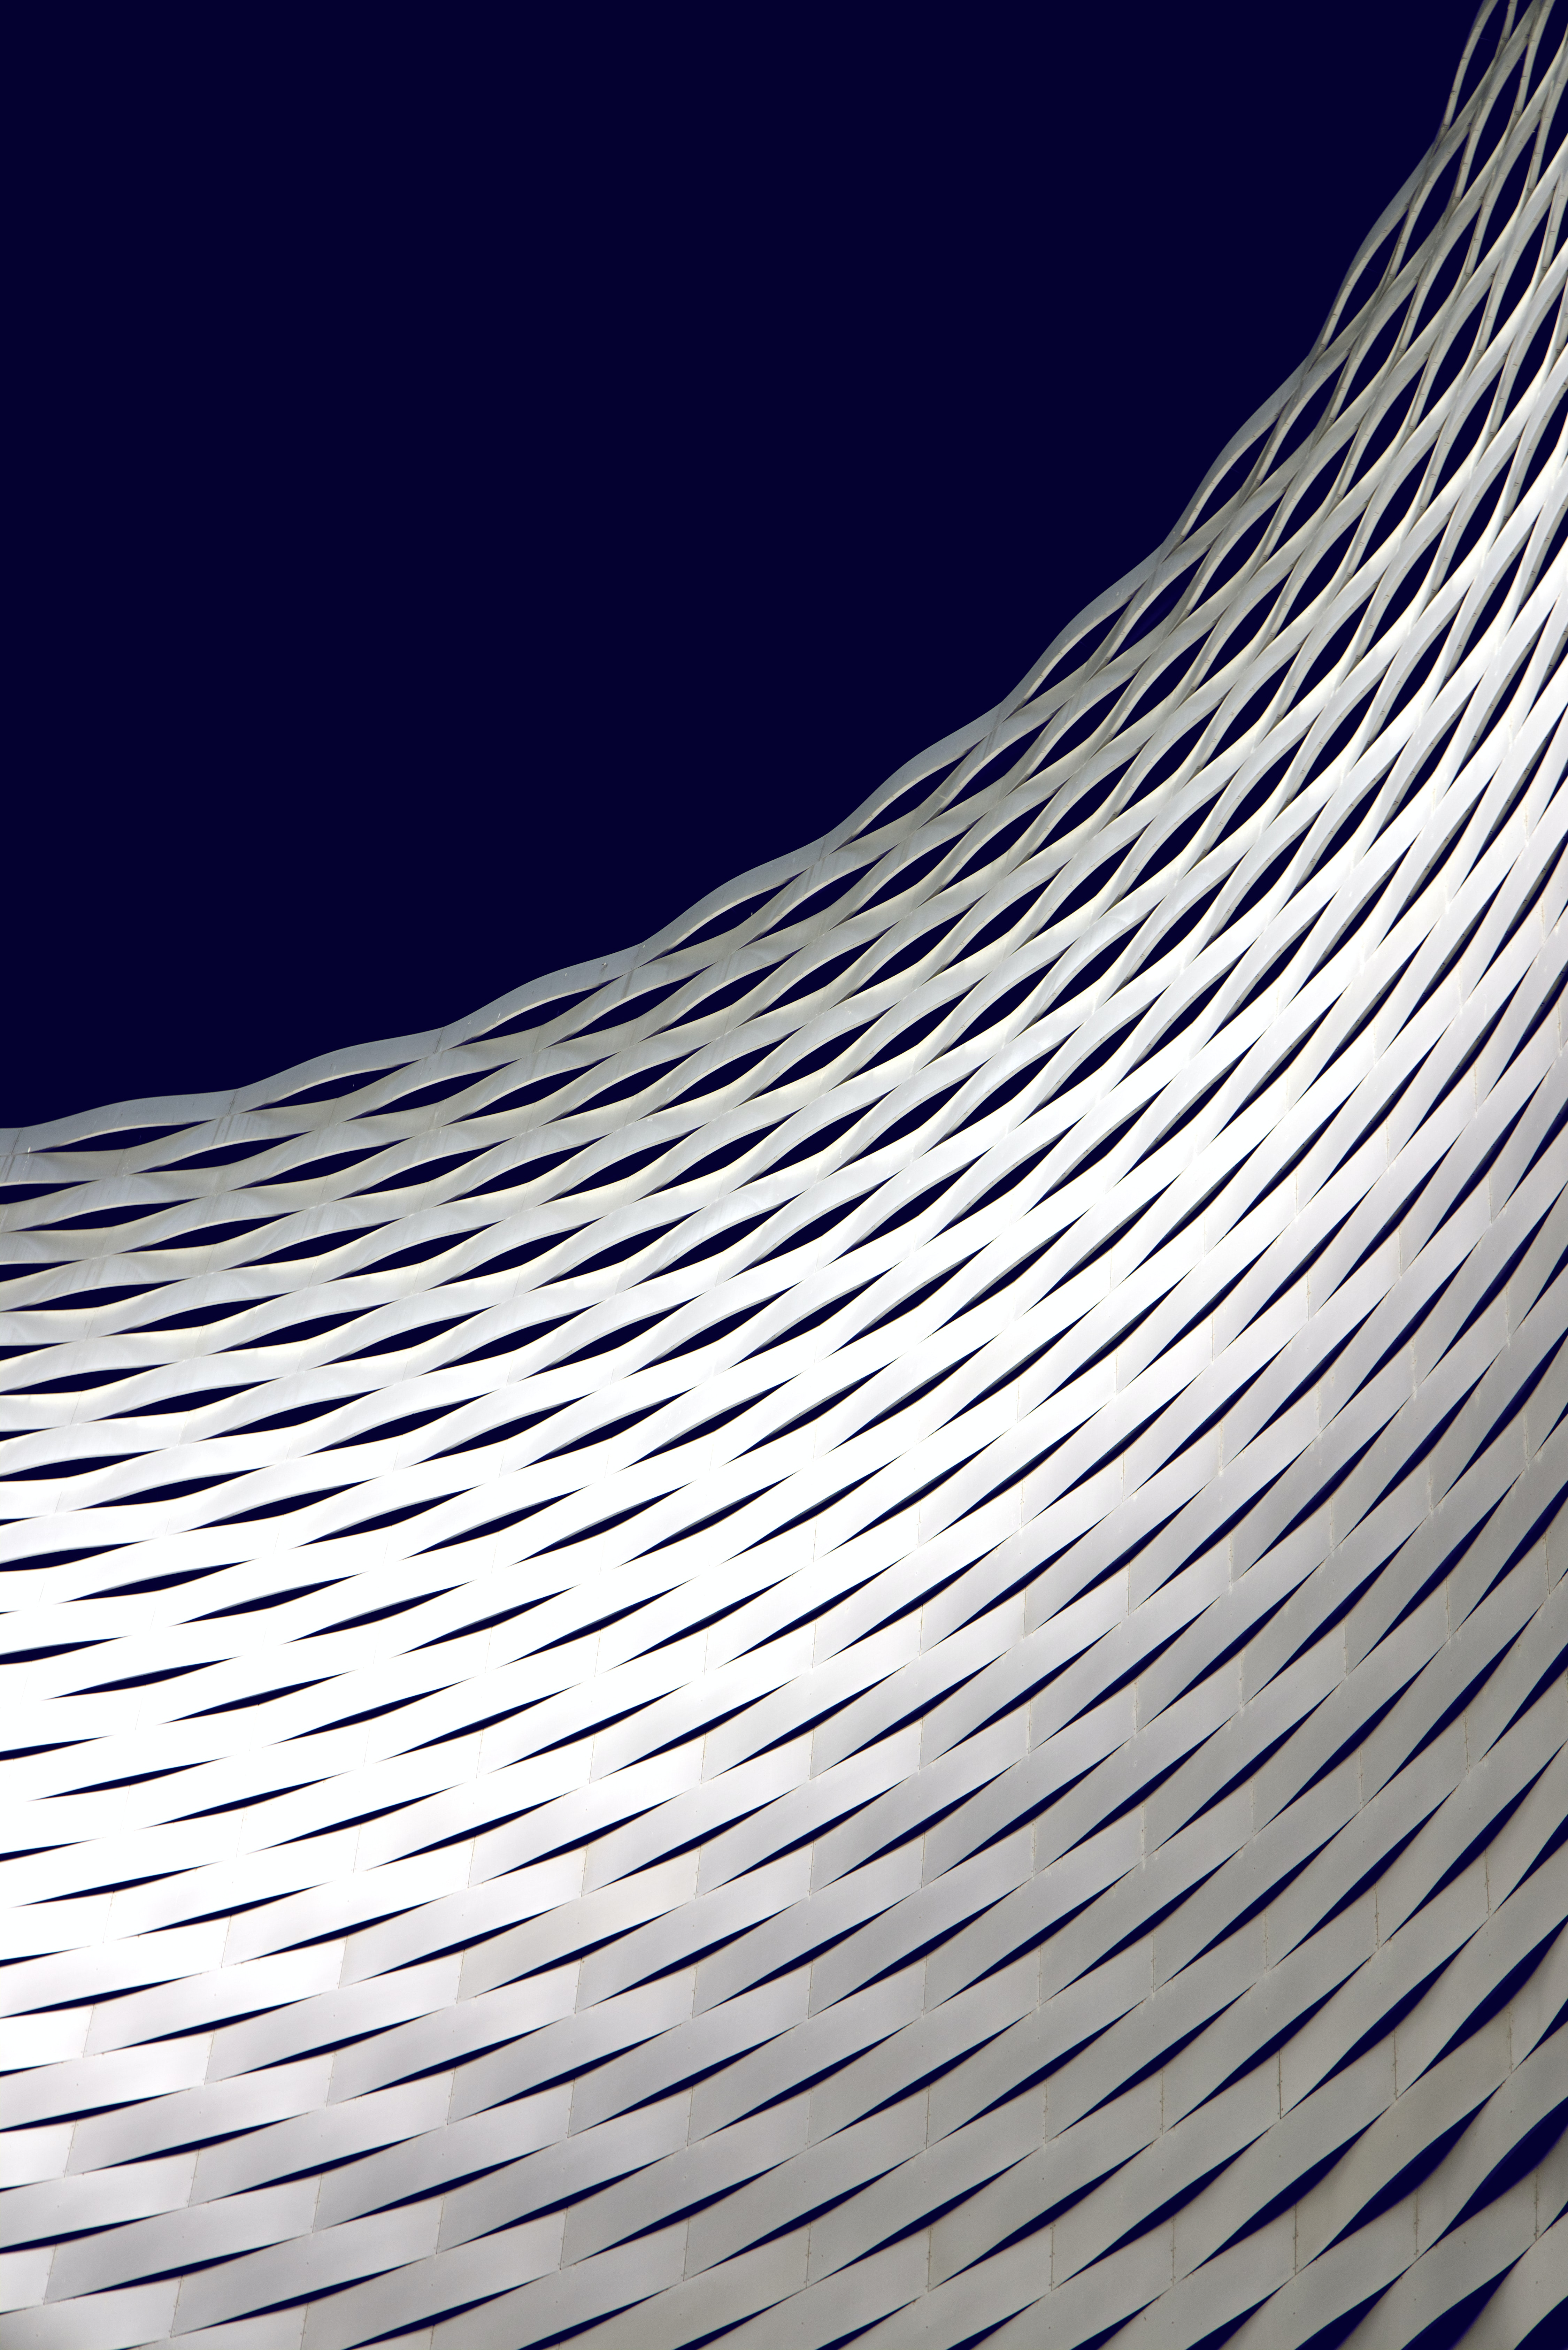 74103 download wallpaper Minimalism, Wavy, Architecture screensavers and pictures for free